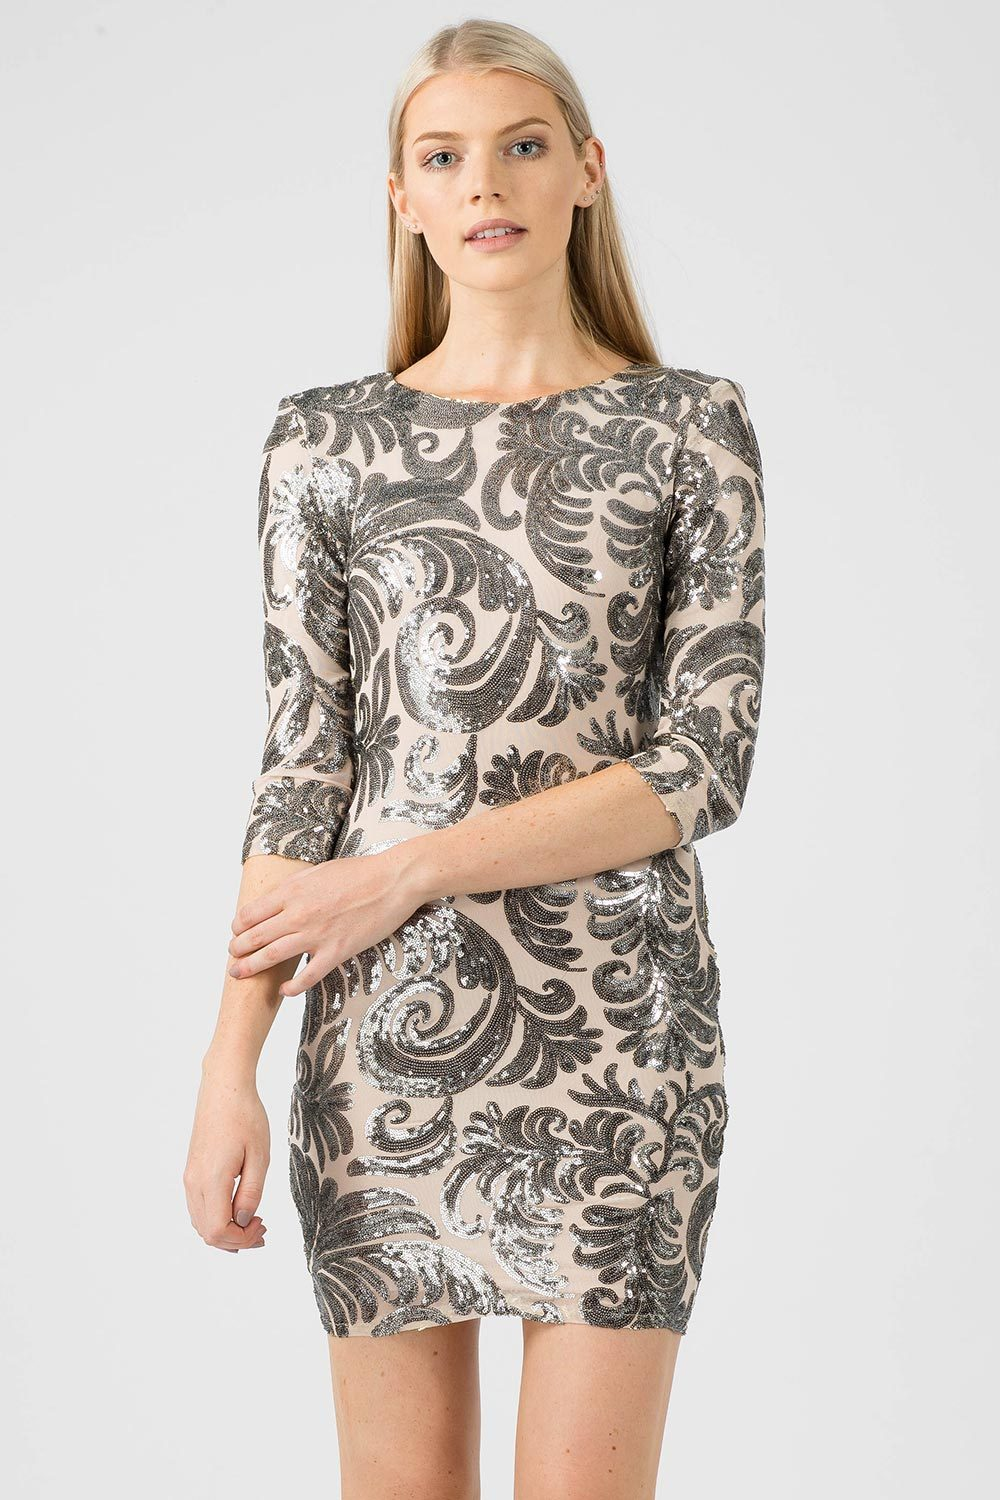 Silver Sequin Floral Bodycon Dress